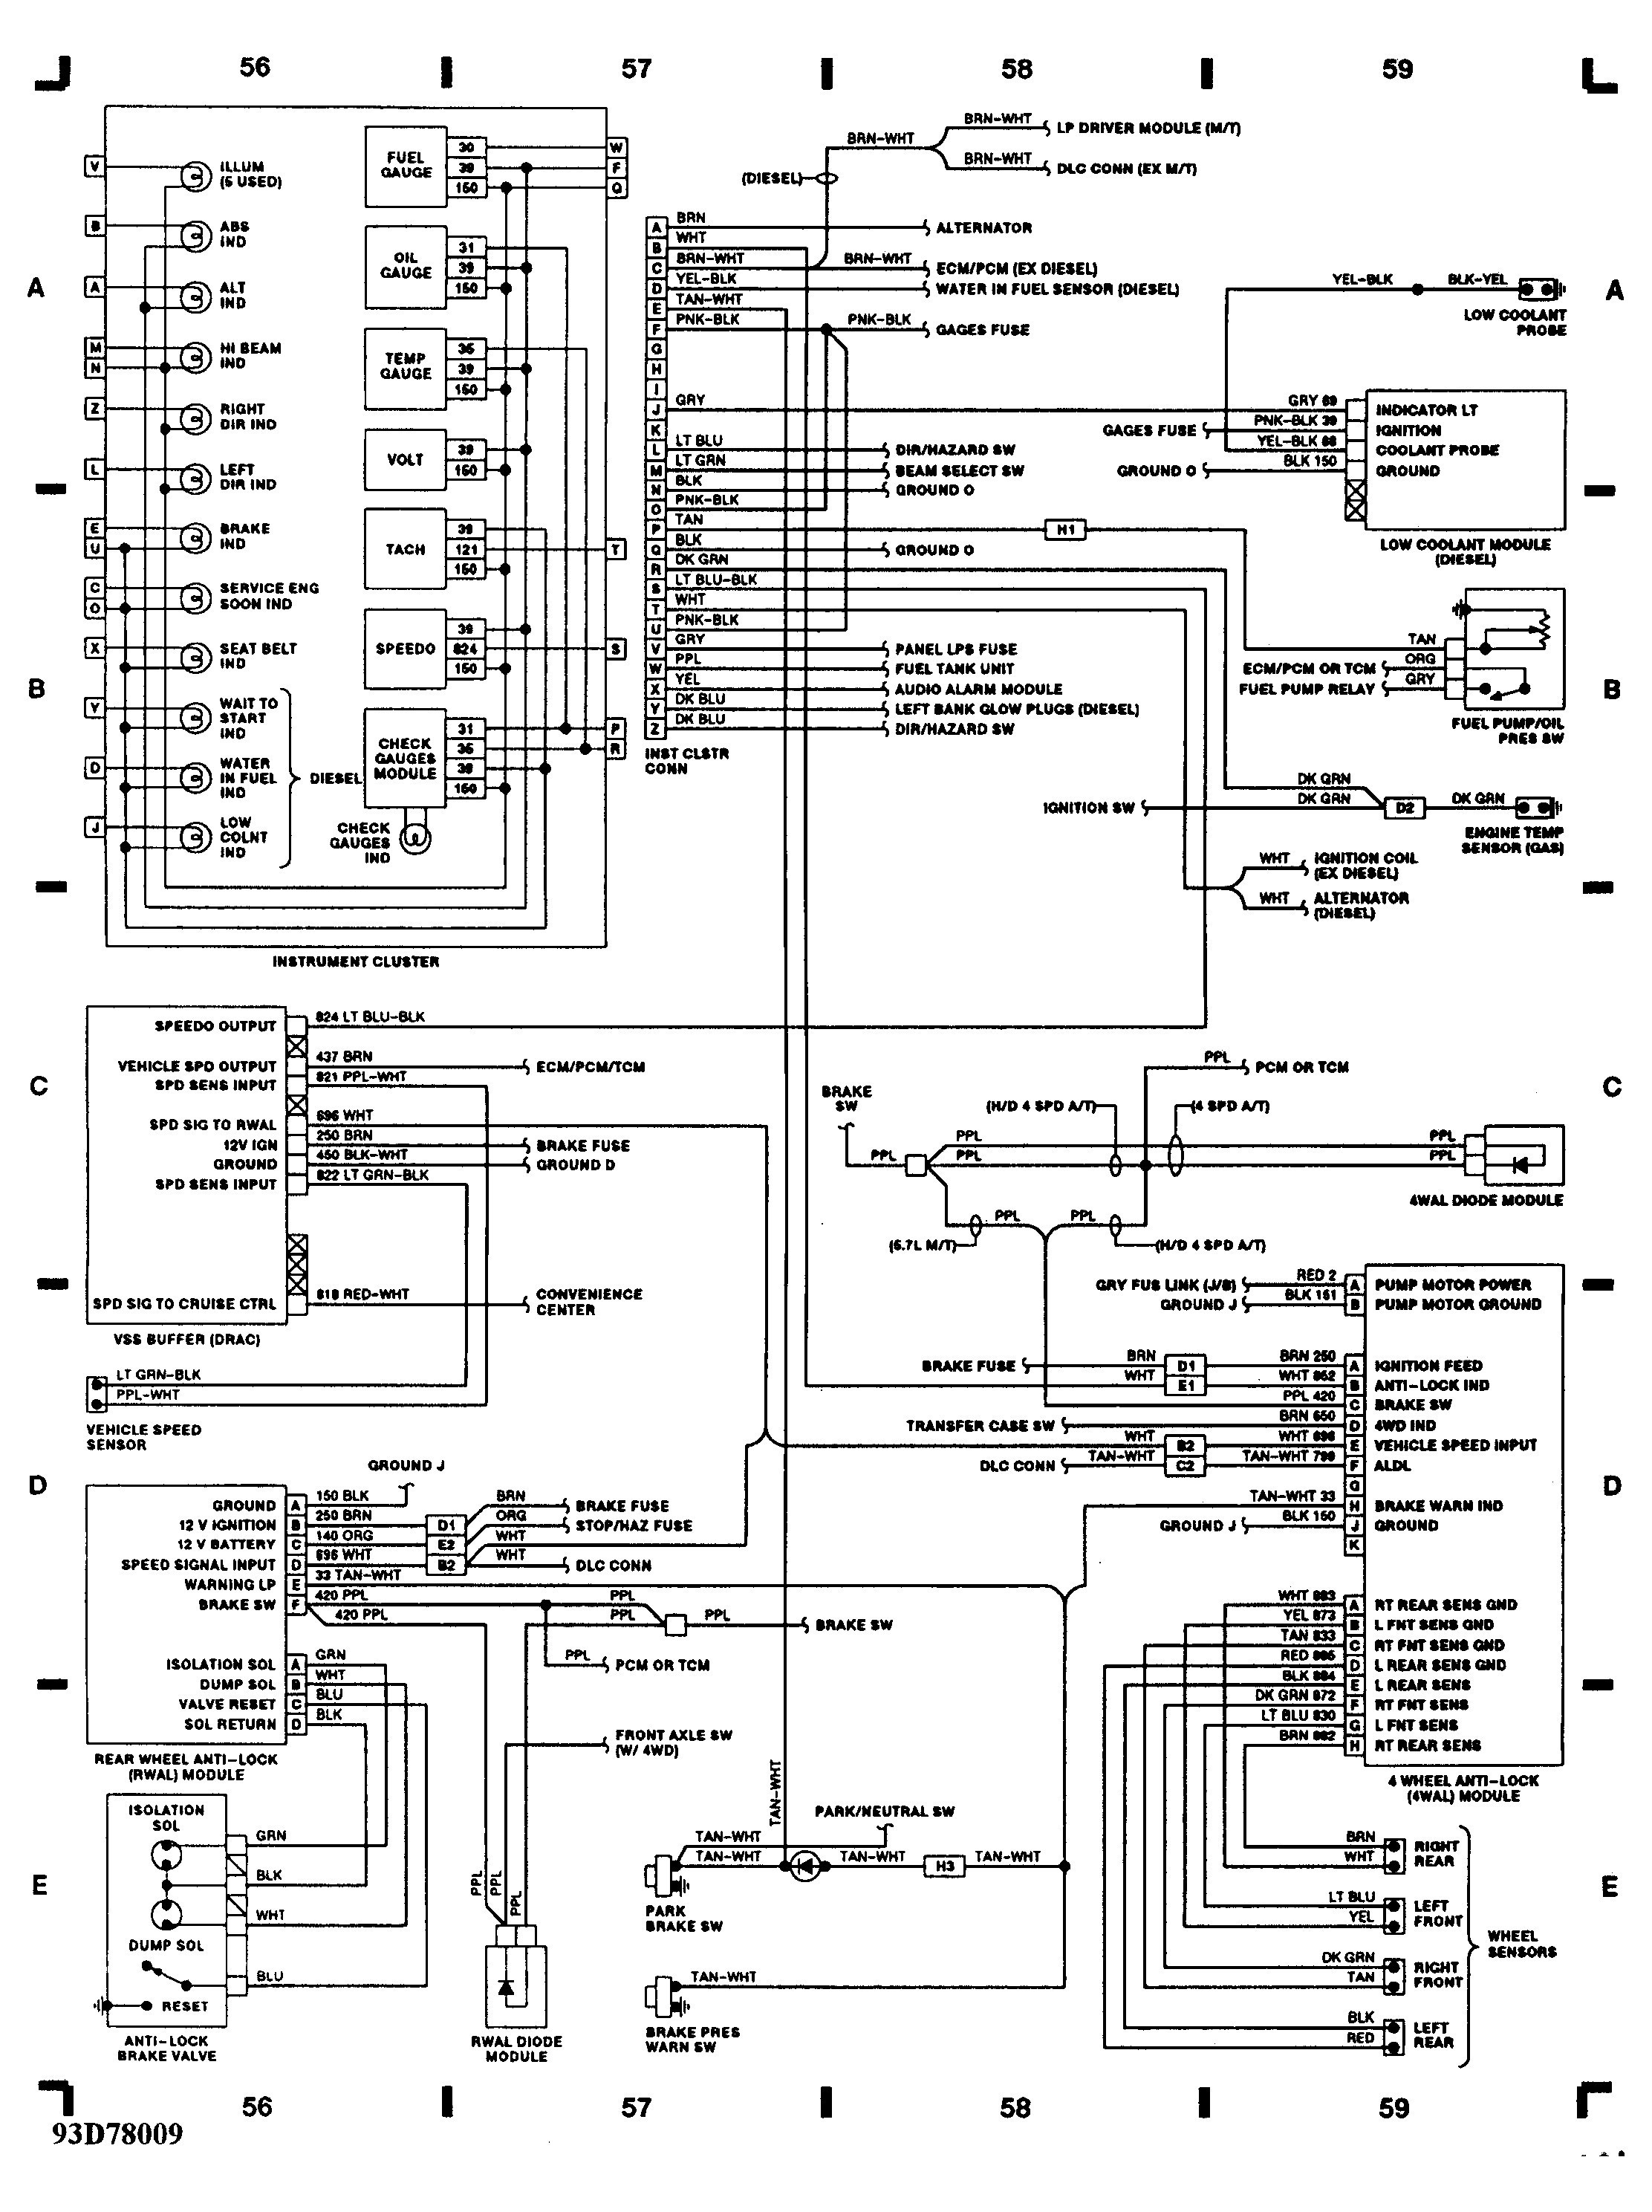 1993 toyota pickup engine diagram my wiring diagram rh detoxicrecenze com  85 Toyota Pickup 93 Toyota Pickup Wheels